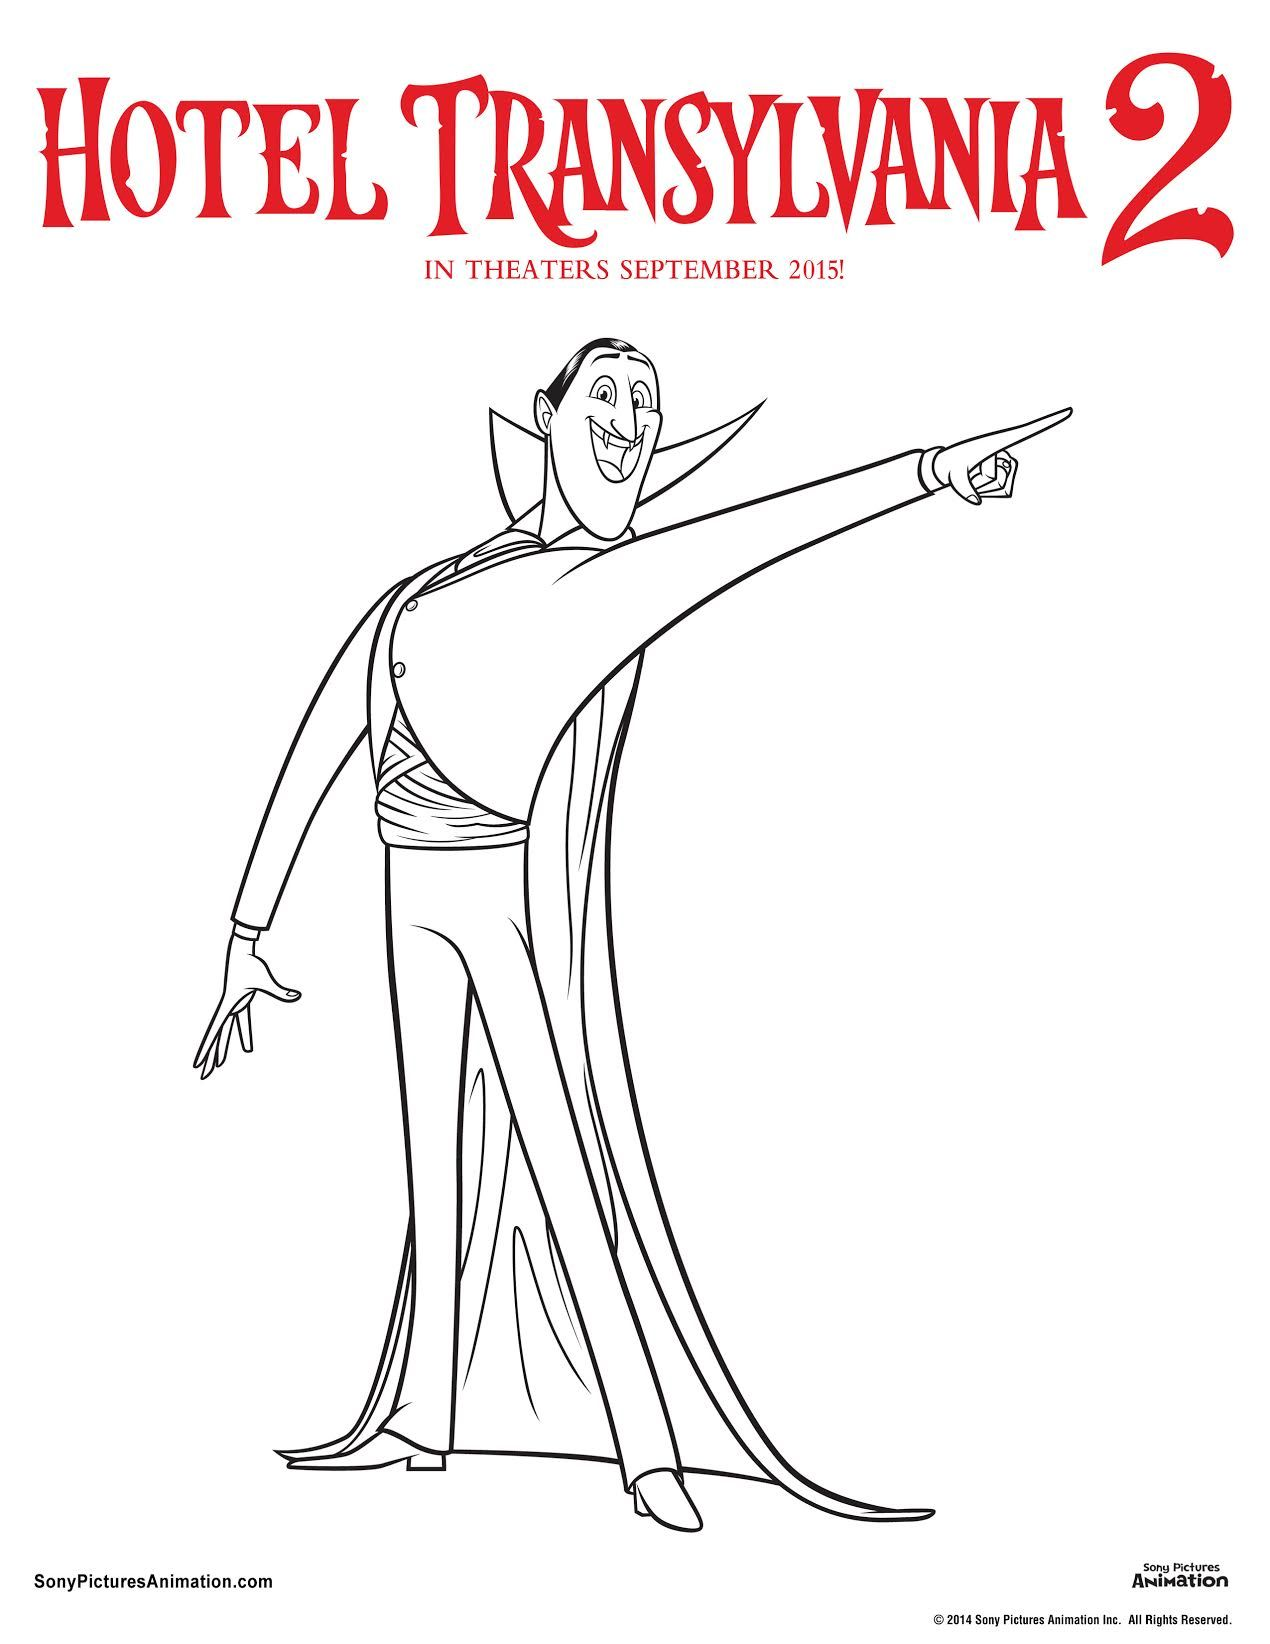 Colouring pages hotel transylvania - Hotel Transylvania 2 Printables Dracula Colouring Page